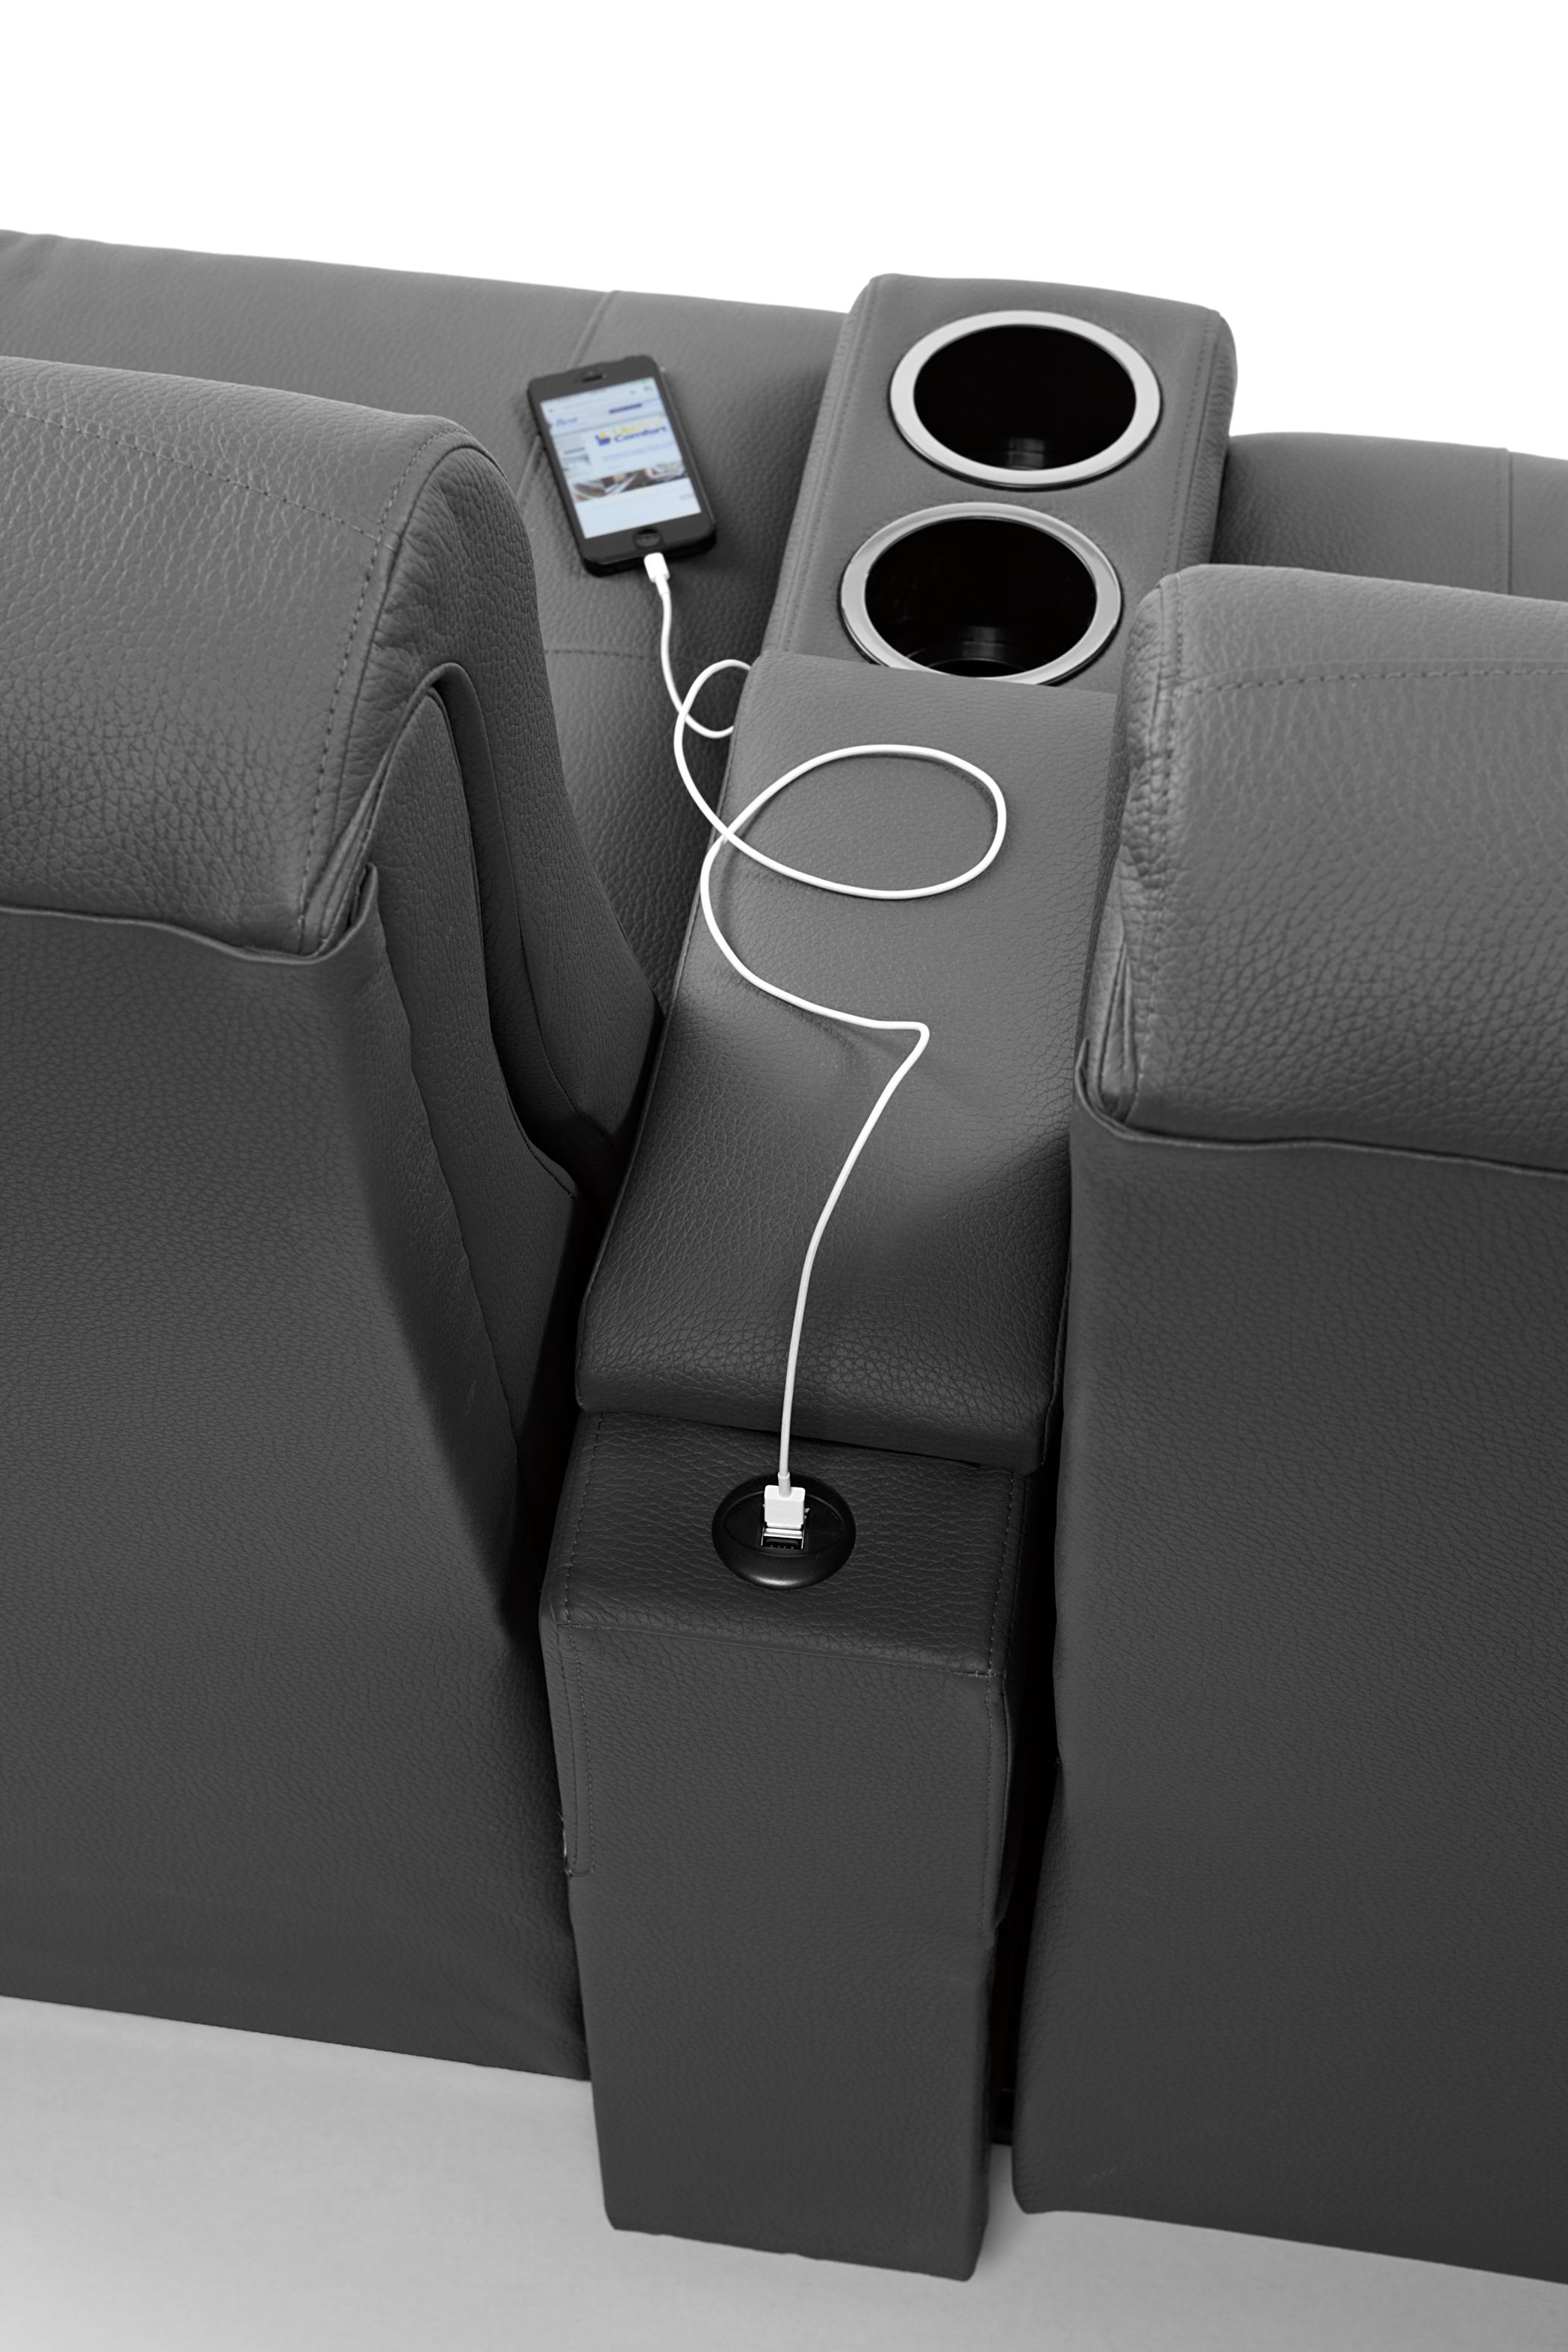 Costilla Contemporary Power Rocking Reclining Loveseat With Drink Console And Charging Port By